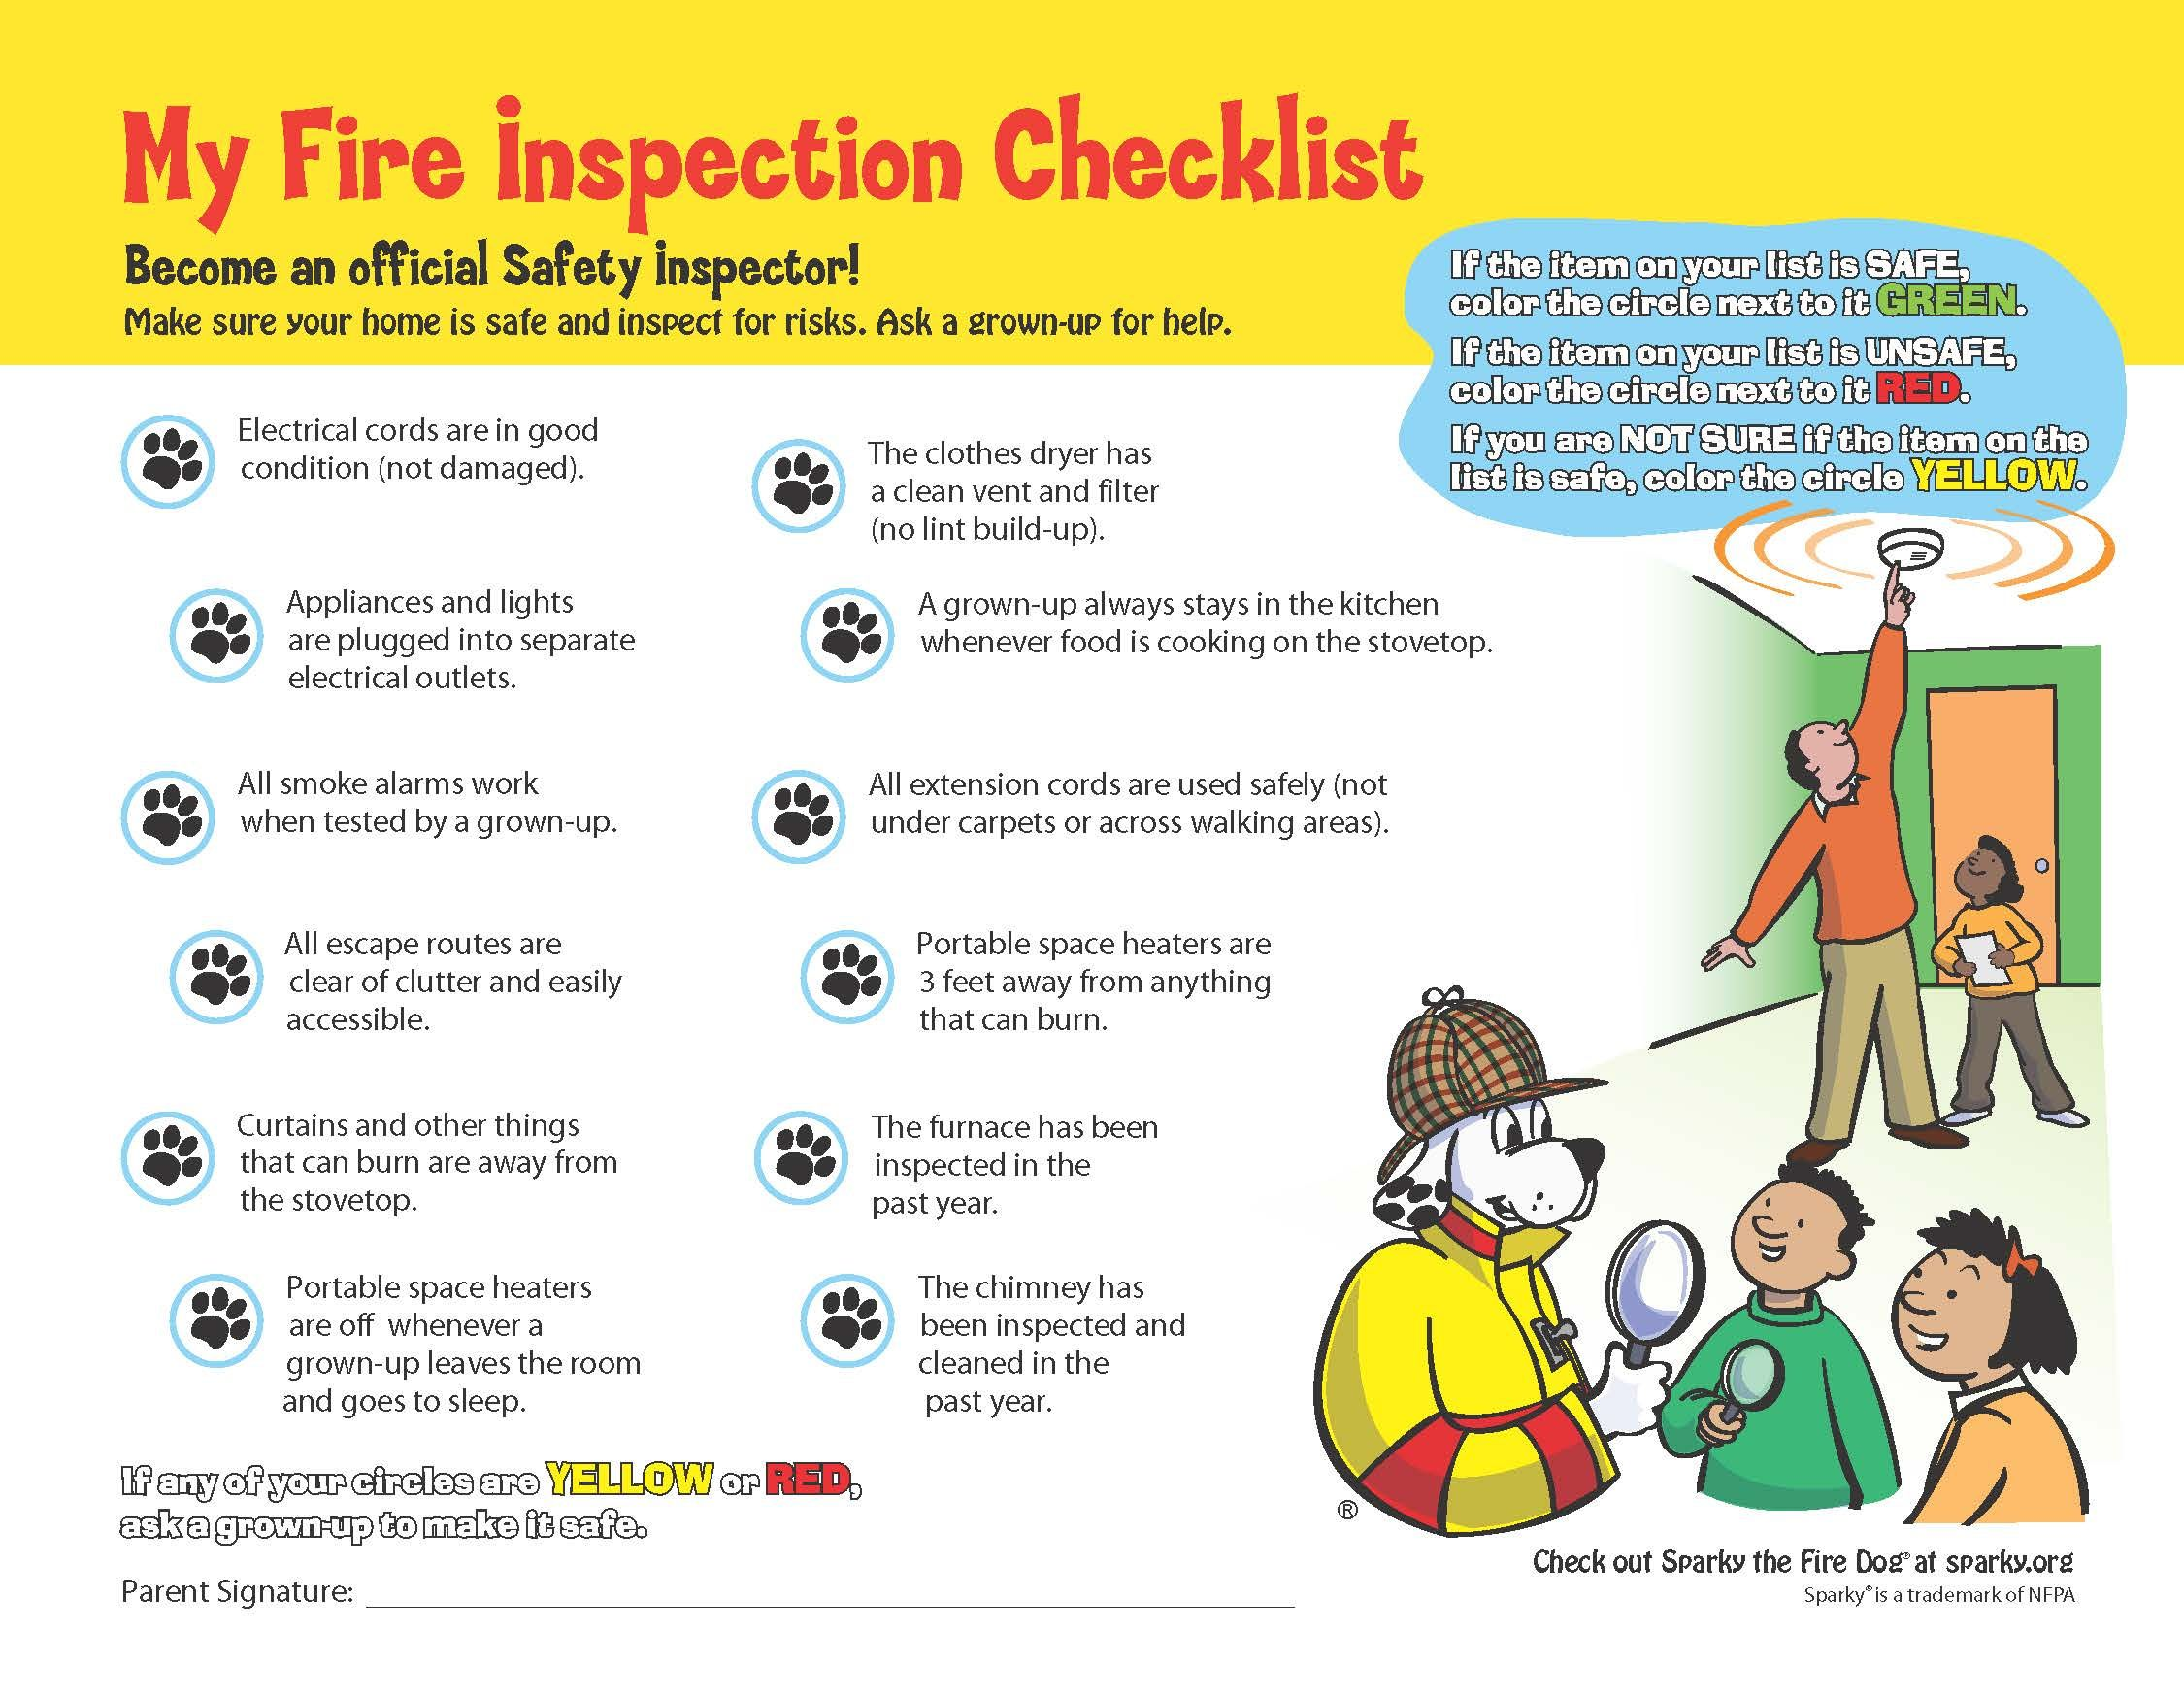 Sparky's Home Fire Inspection Checklist | Kids' Activities, Games ...